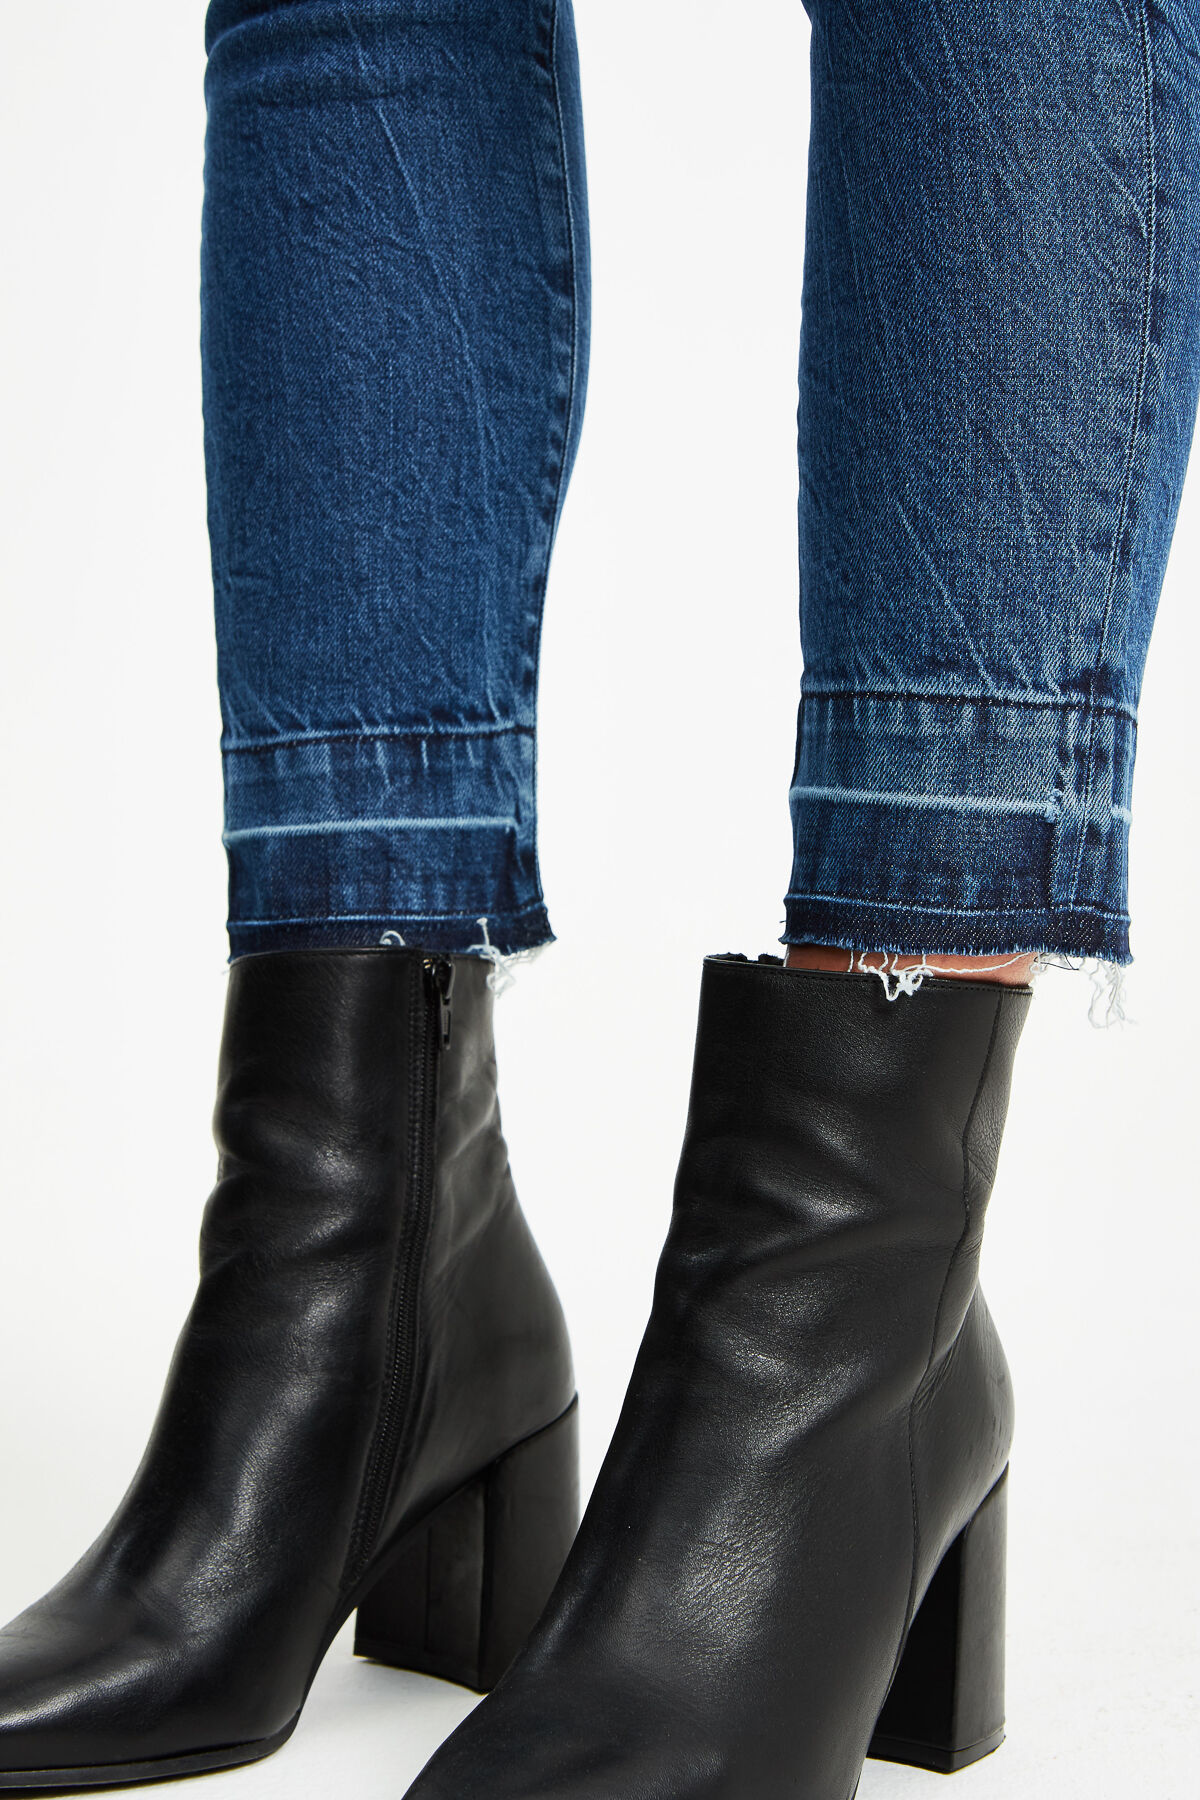 LIZ ANKLE Faded Indigo - Straight Fit